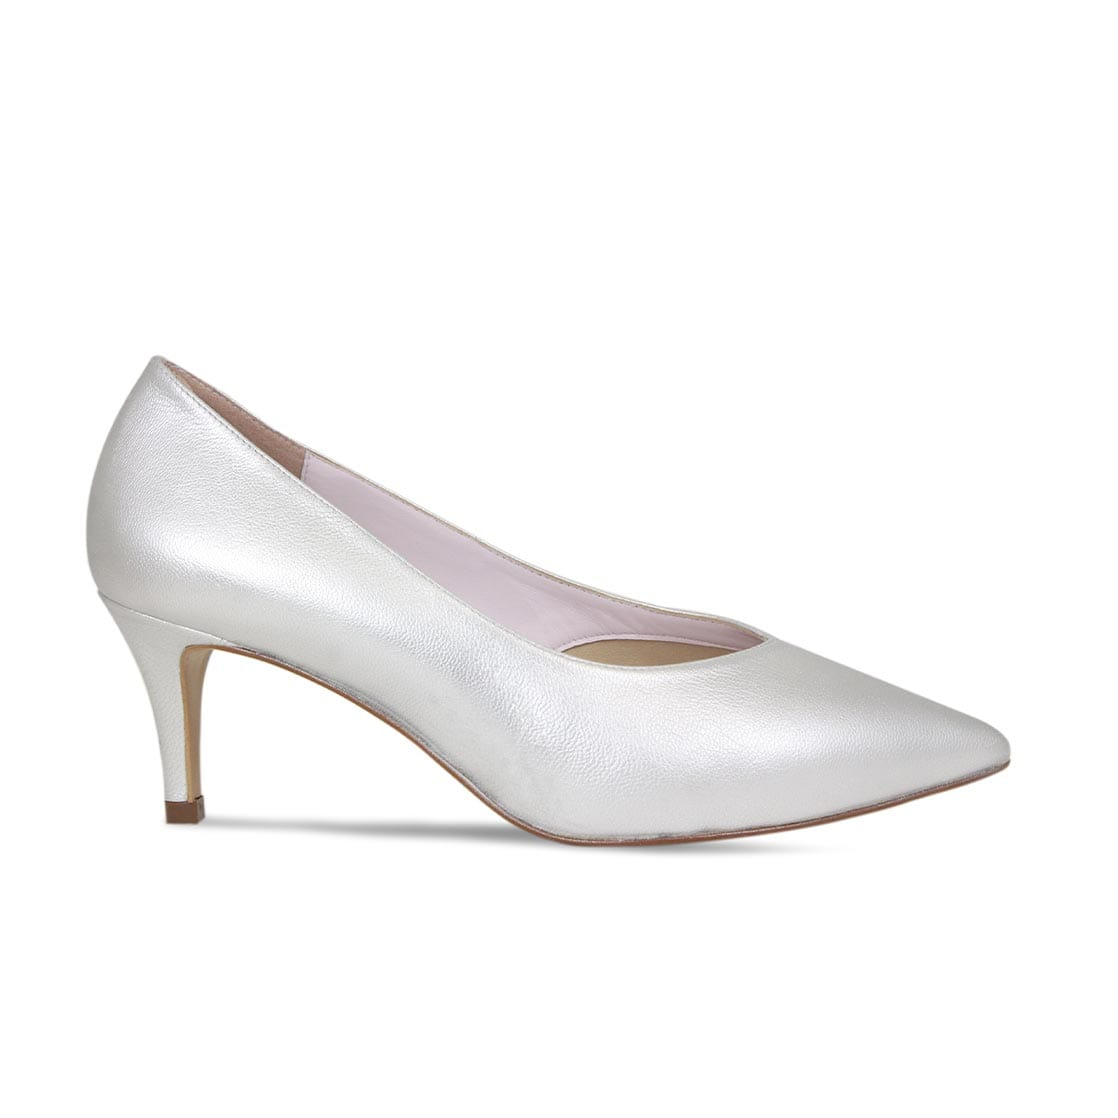 Silver Leather Mid-Heel Pumps